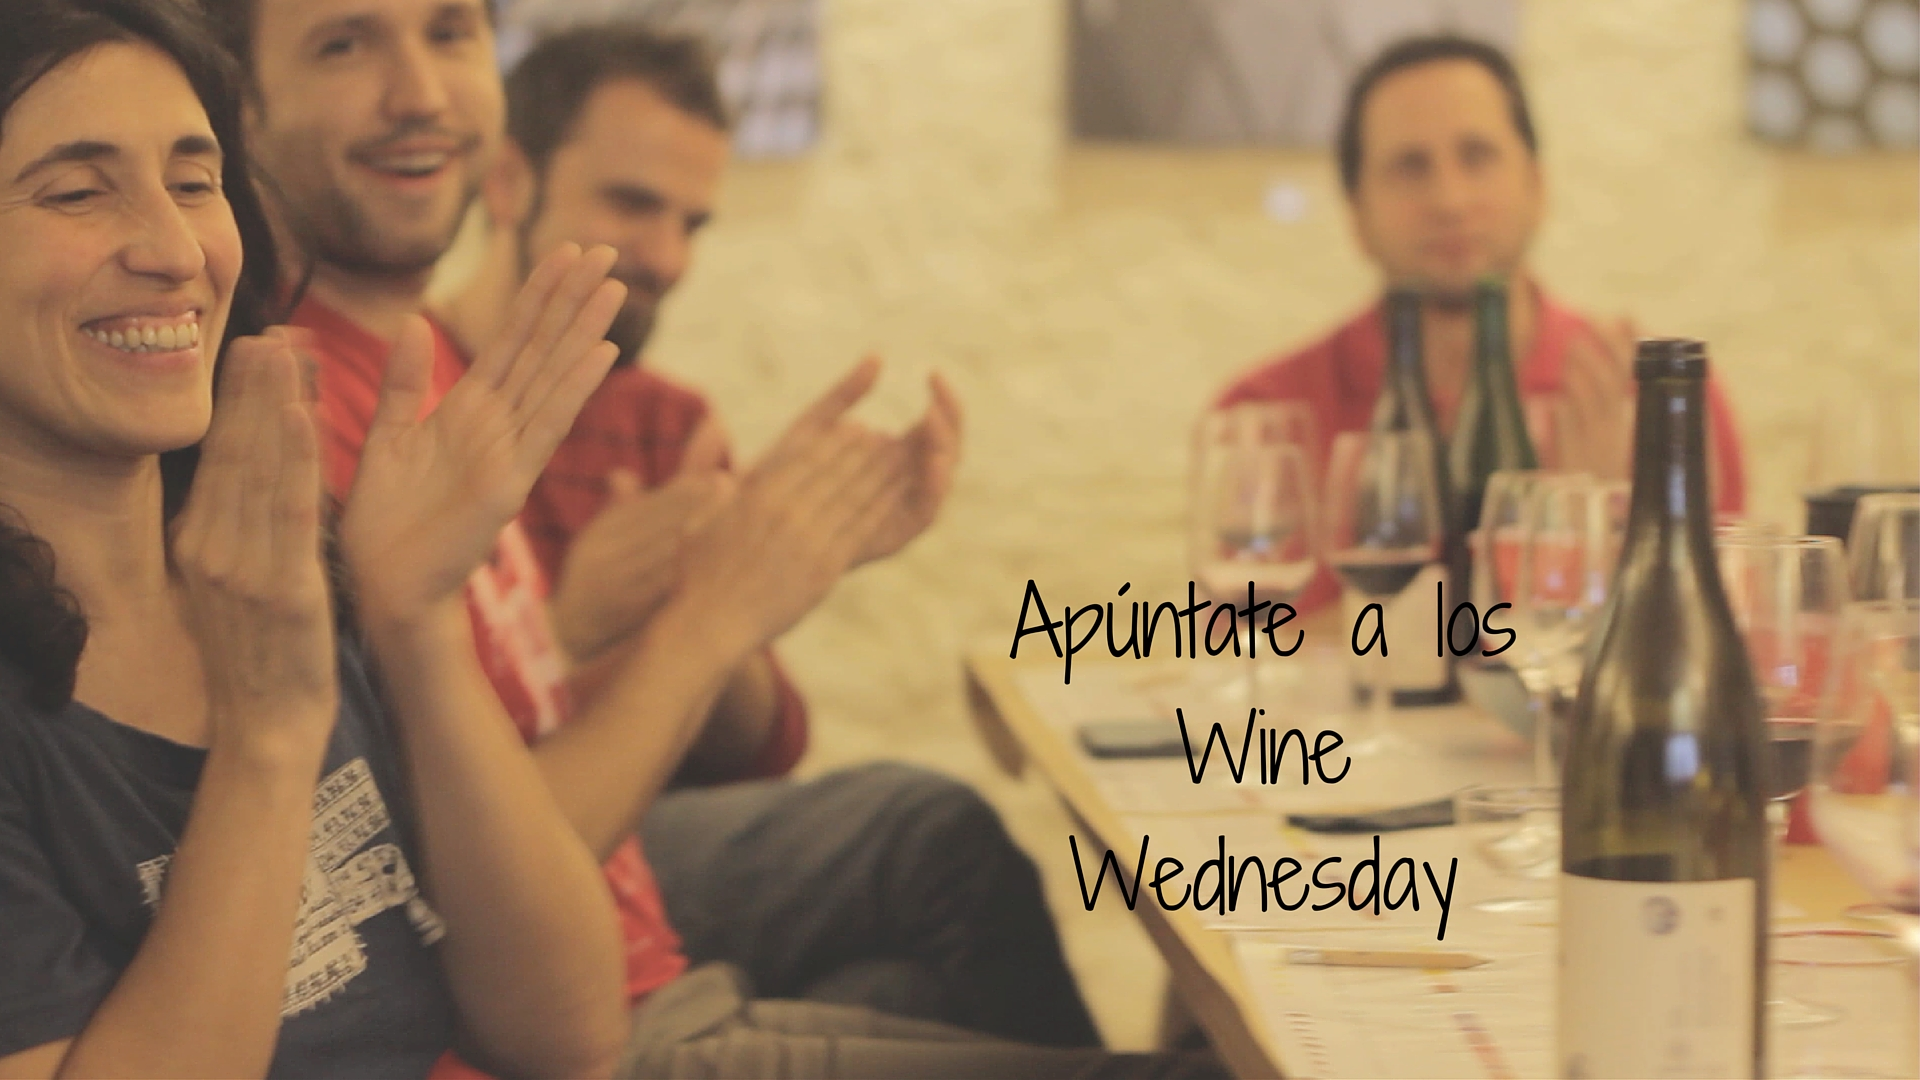 Apúntate a los Wine Wednesday